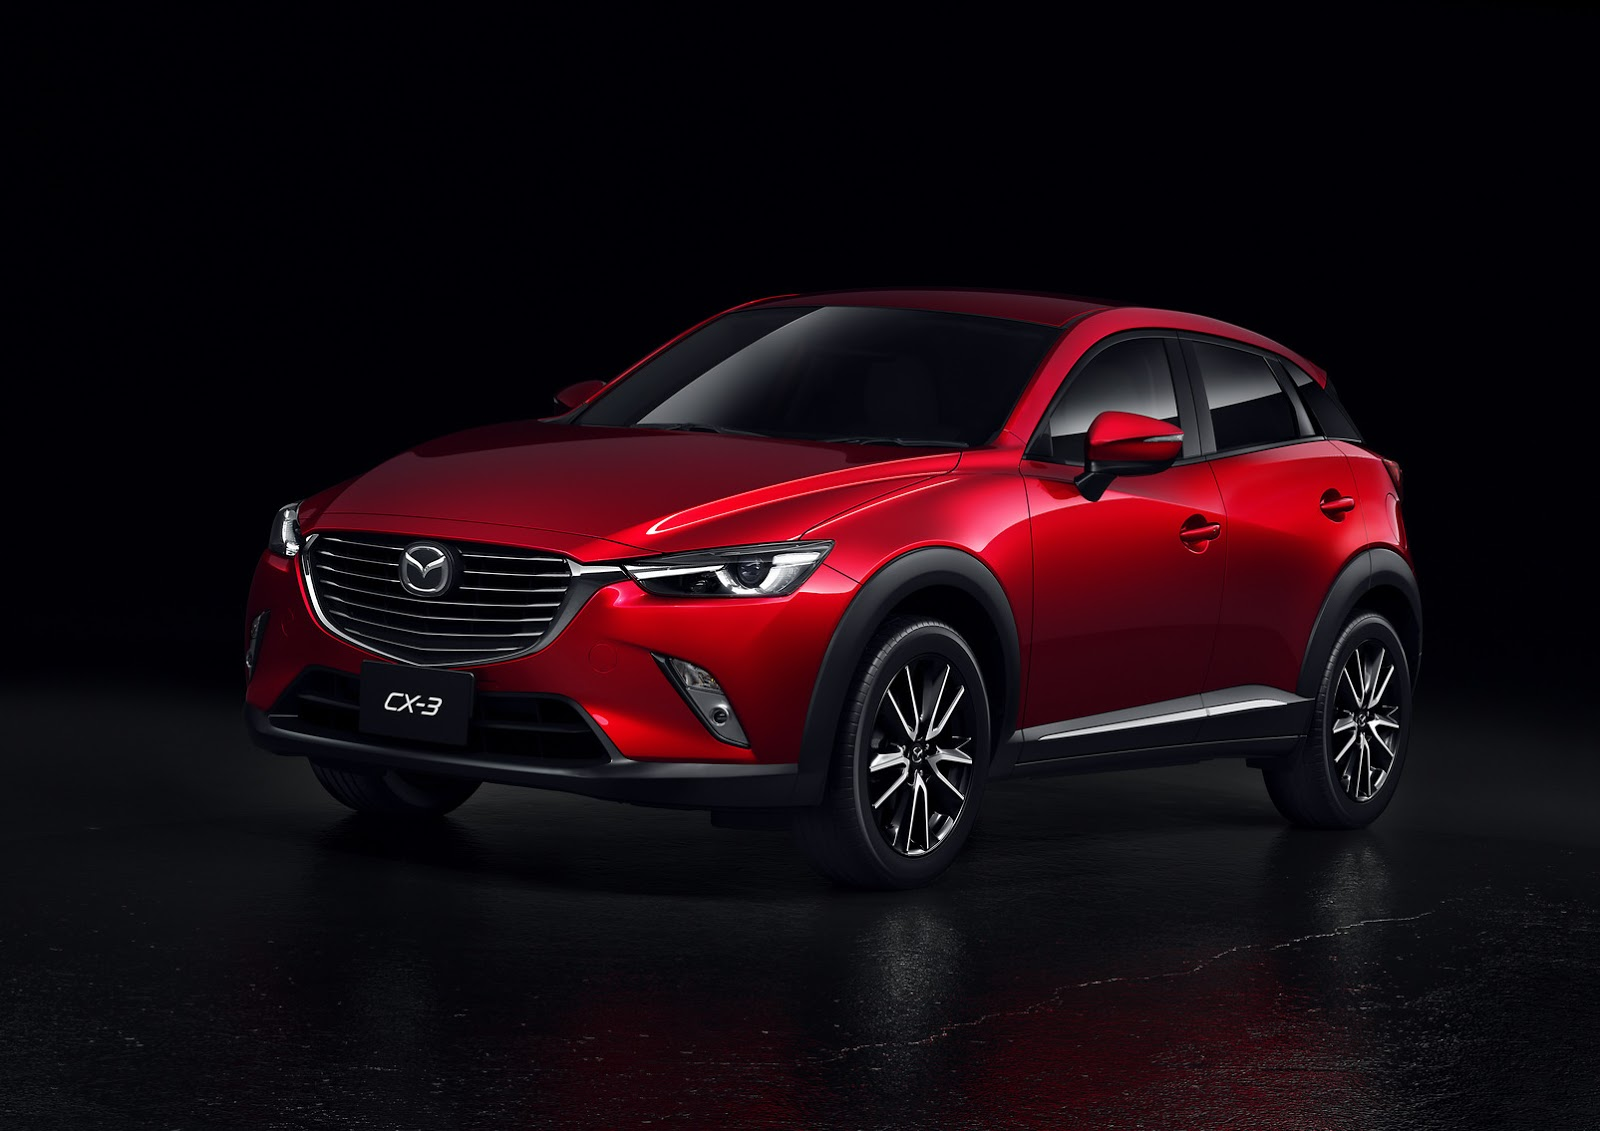 new mazda cx 3 small suv photo gallery autocar india. Black Bedroom Furniture Sets. Home Design Ideas